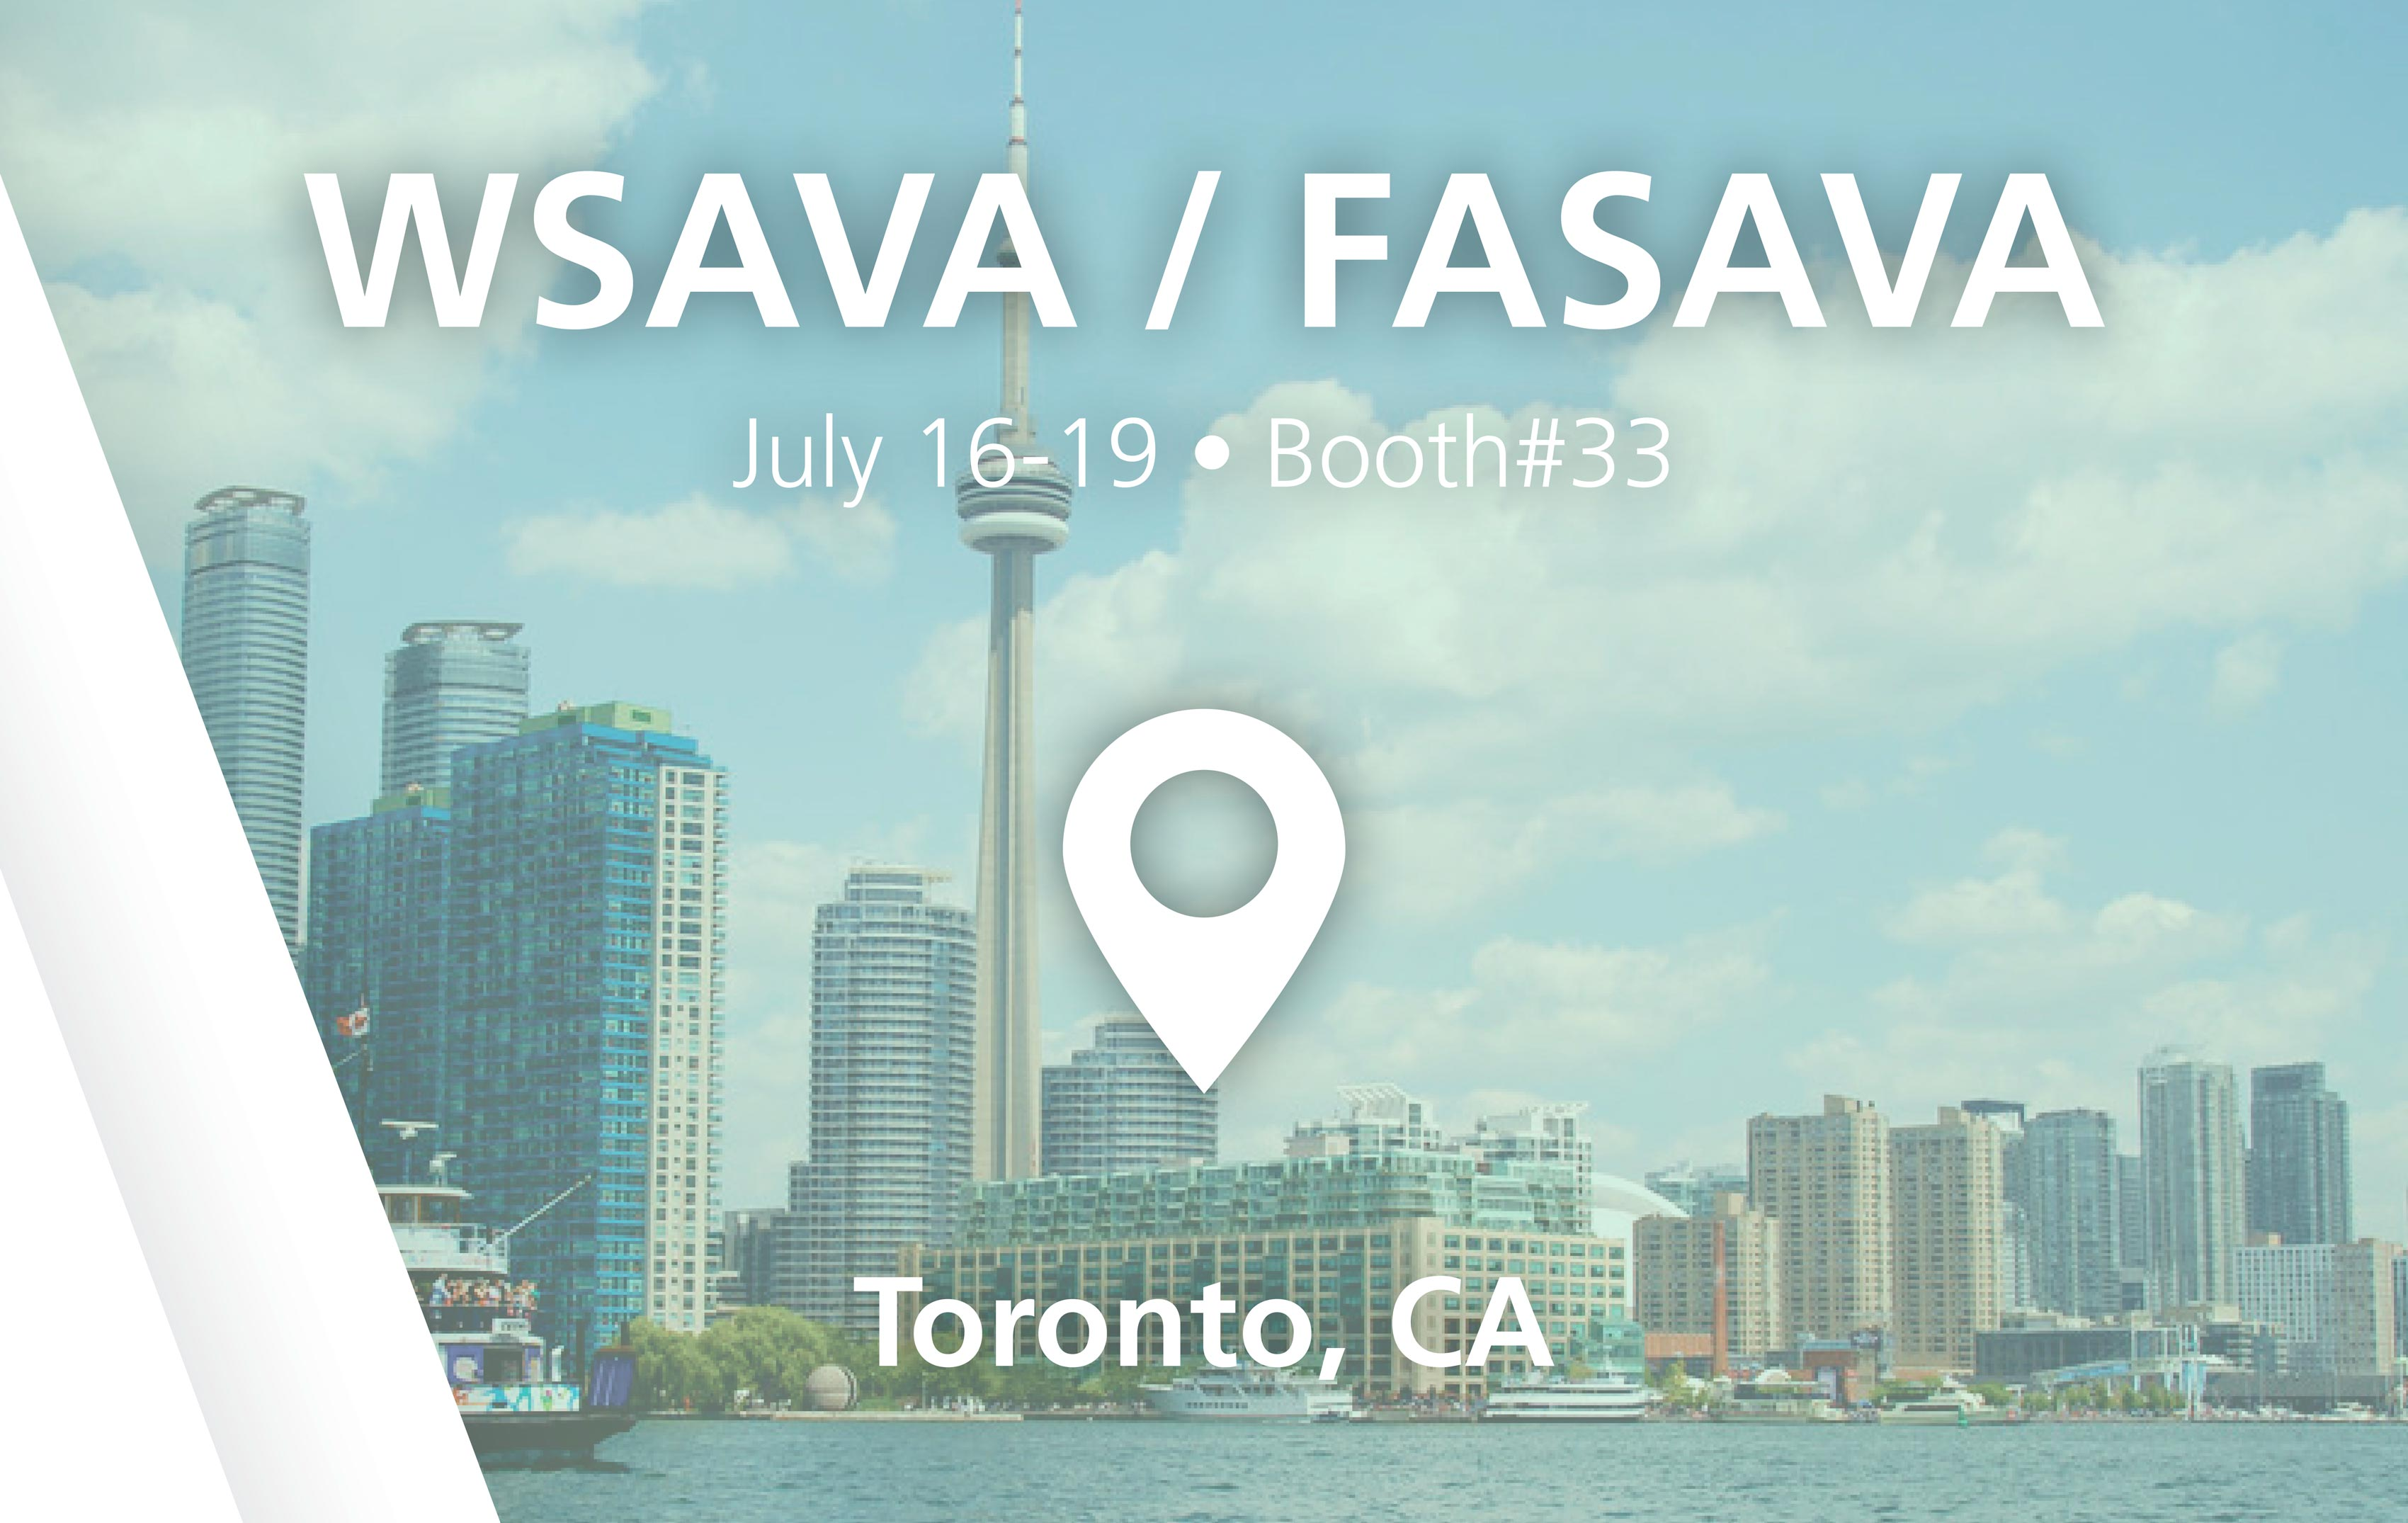 WSAVA / FASAVA - Booth#33 - July 16-19